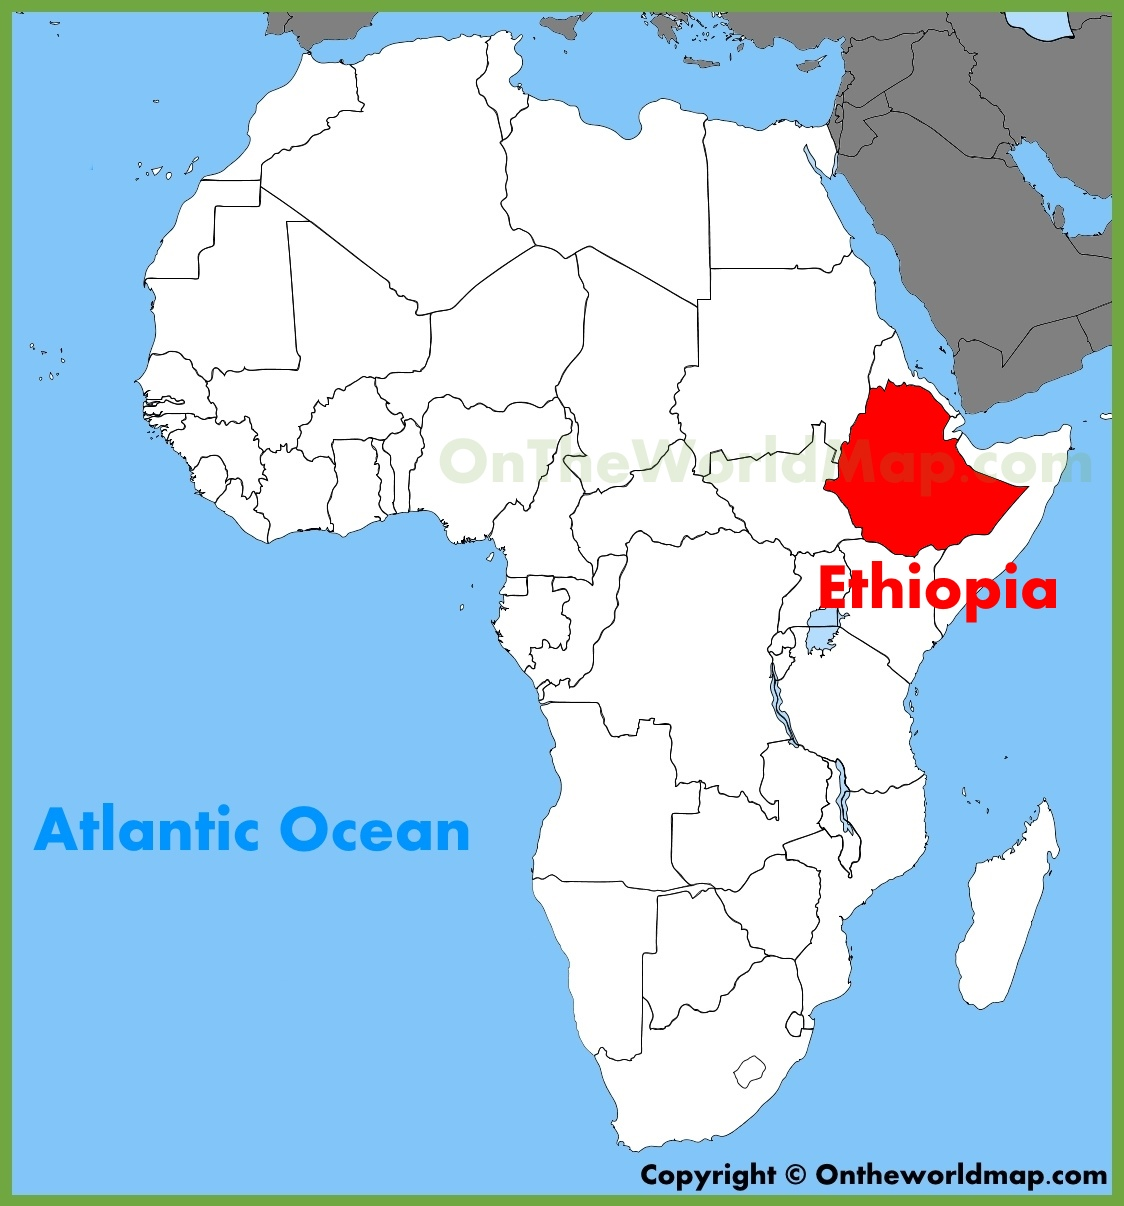 Ethiopia location on the Africa map